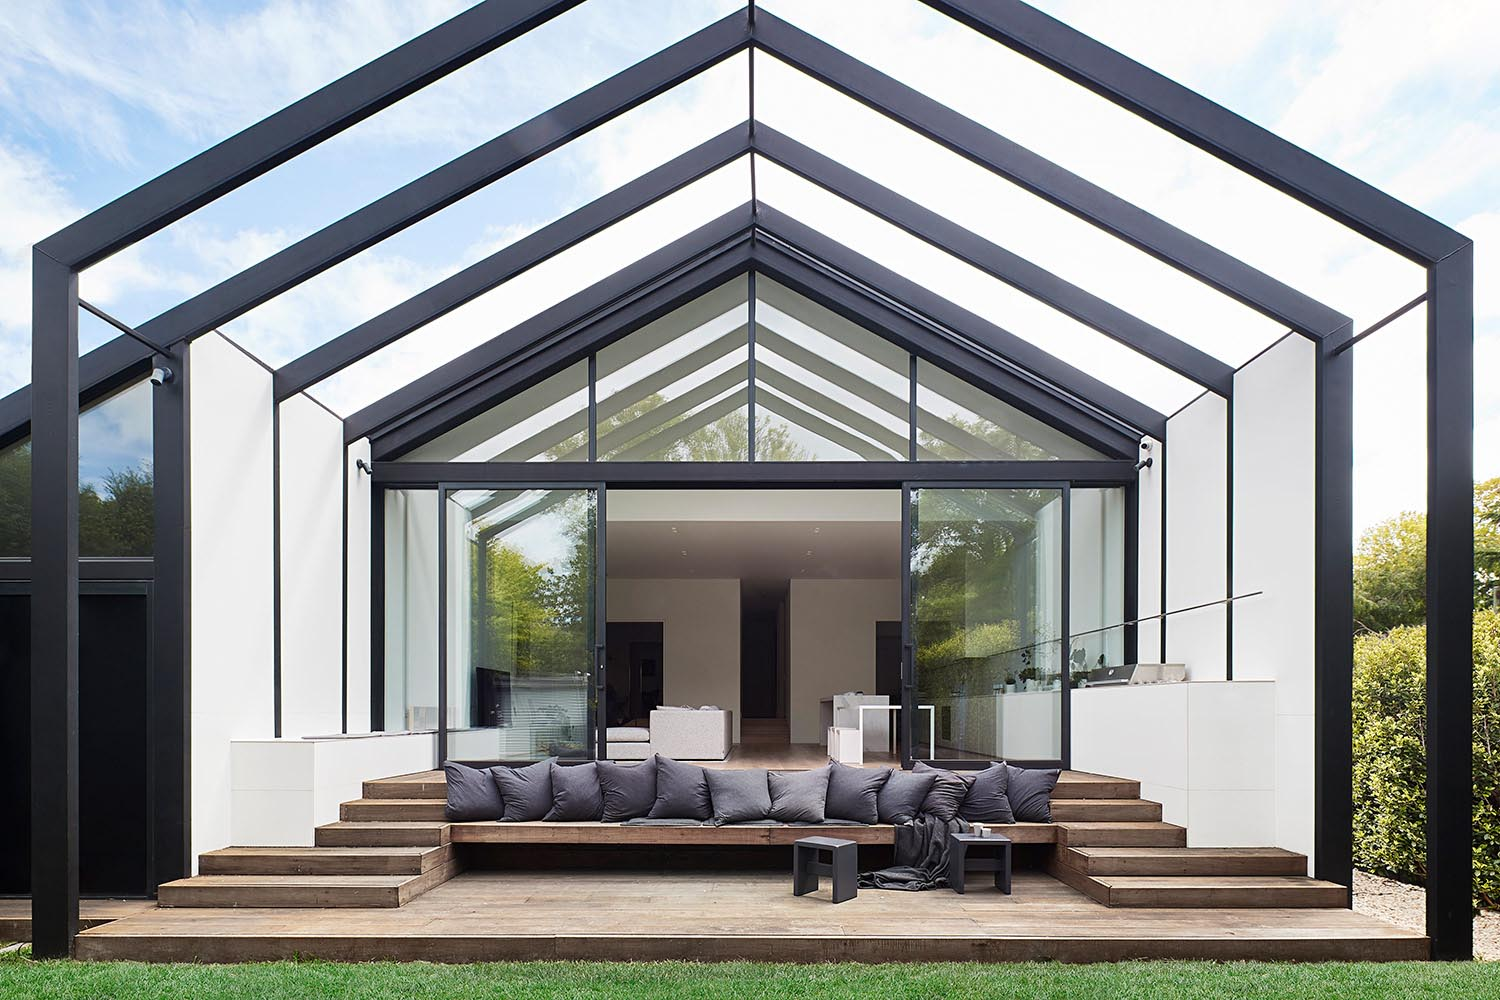 The two story addition has been designed as an indoor/outdoor transition zone, gently stepping down from the house interior to the outdoor seating area and the garden.